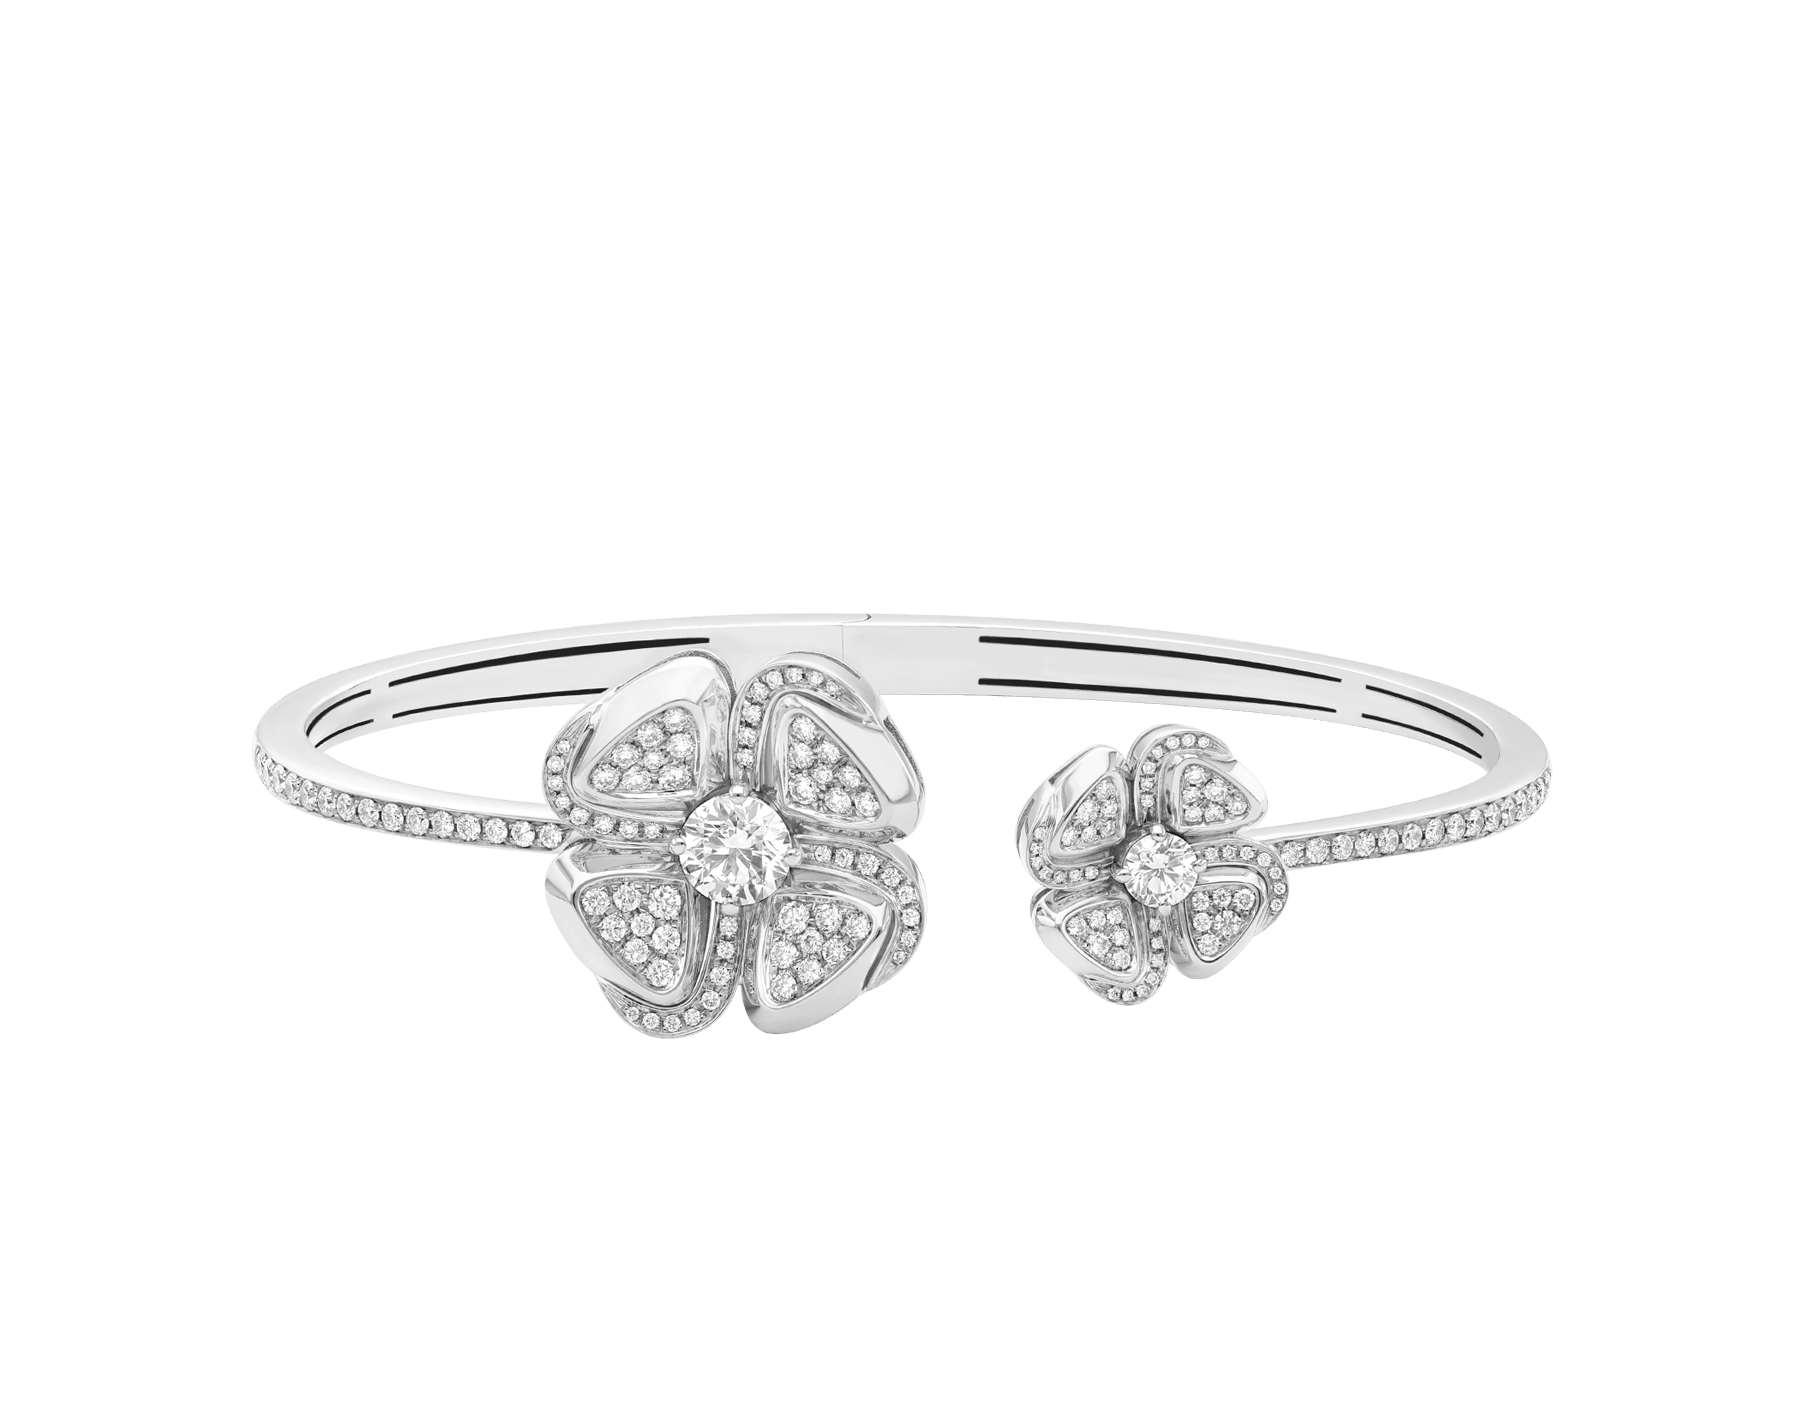 Fiorever 18 kt white gold bangle set with two central diamonds (0.50 ct and 0.15 ct) and pavé diamonds BR858890 image 3